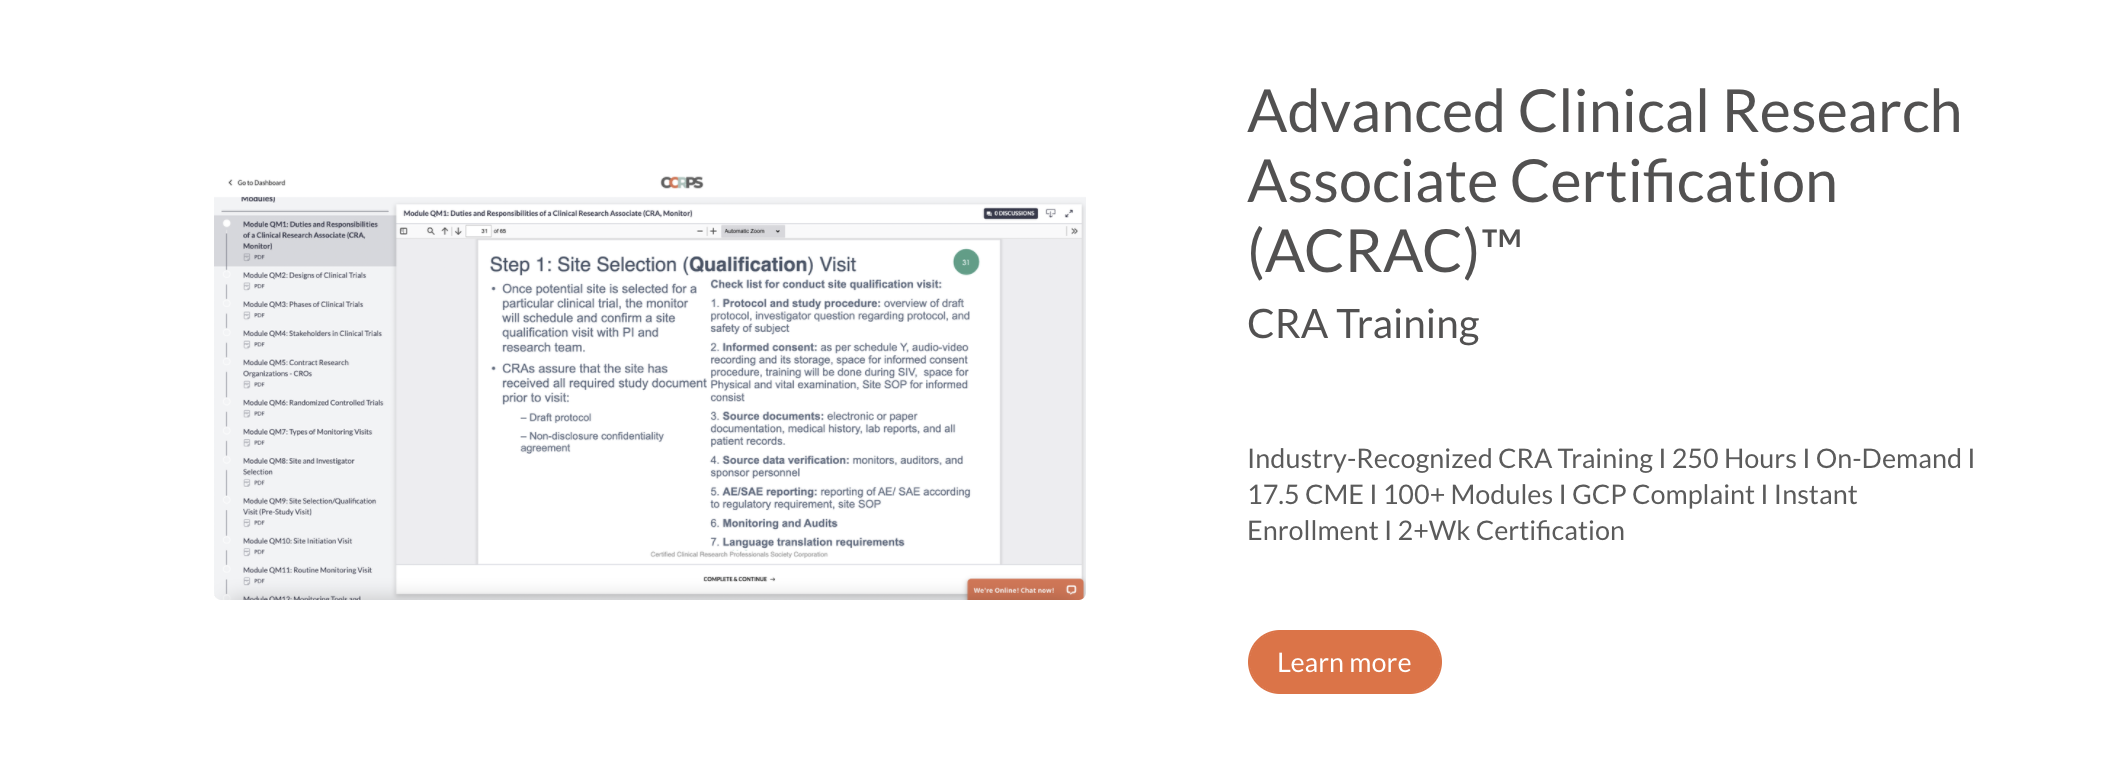 How to Become a Clinical Research Associate (CRA)? CCRPS Provides Entry-Level Options for Advanced CRA Training